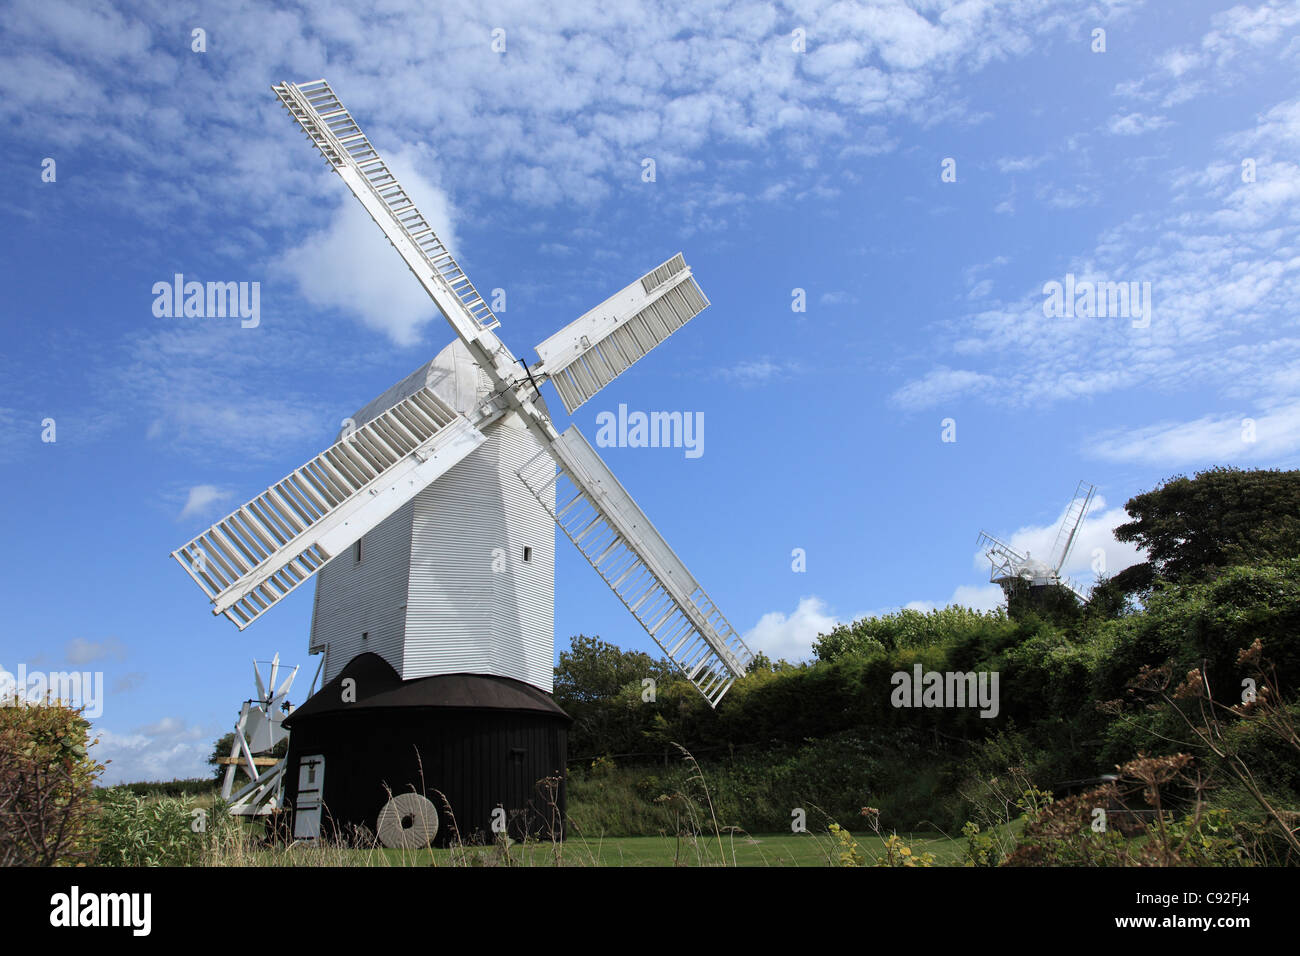 There are several historic windmills on the Sussex Downs. - Stock Image